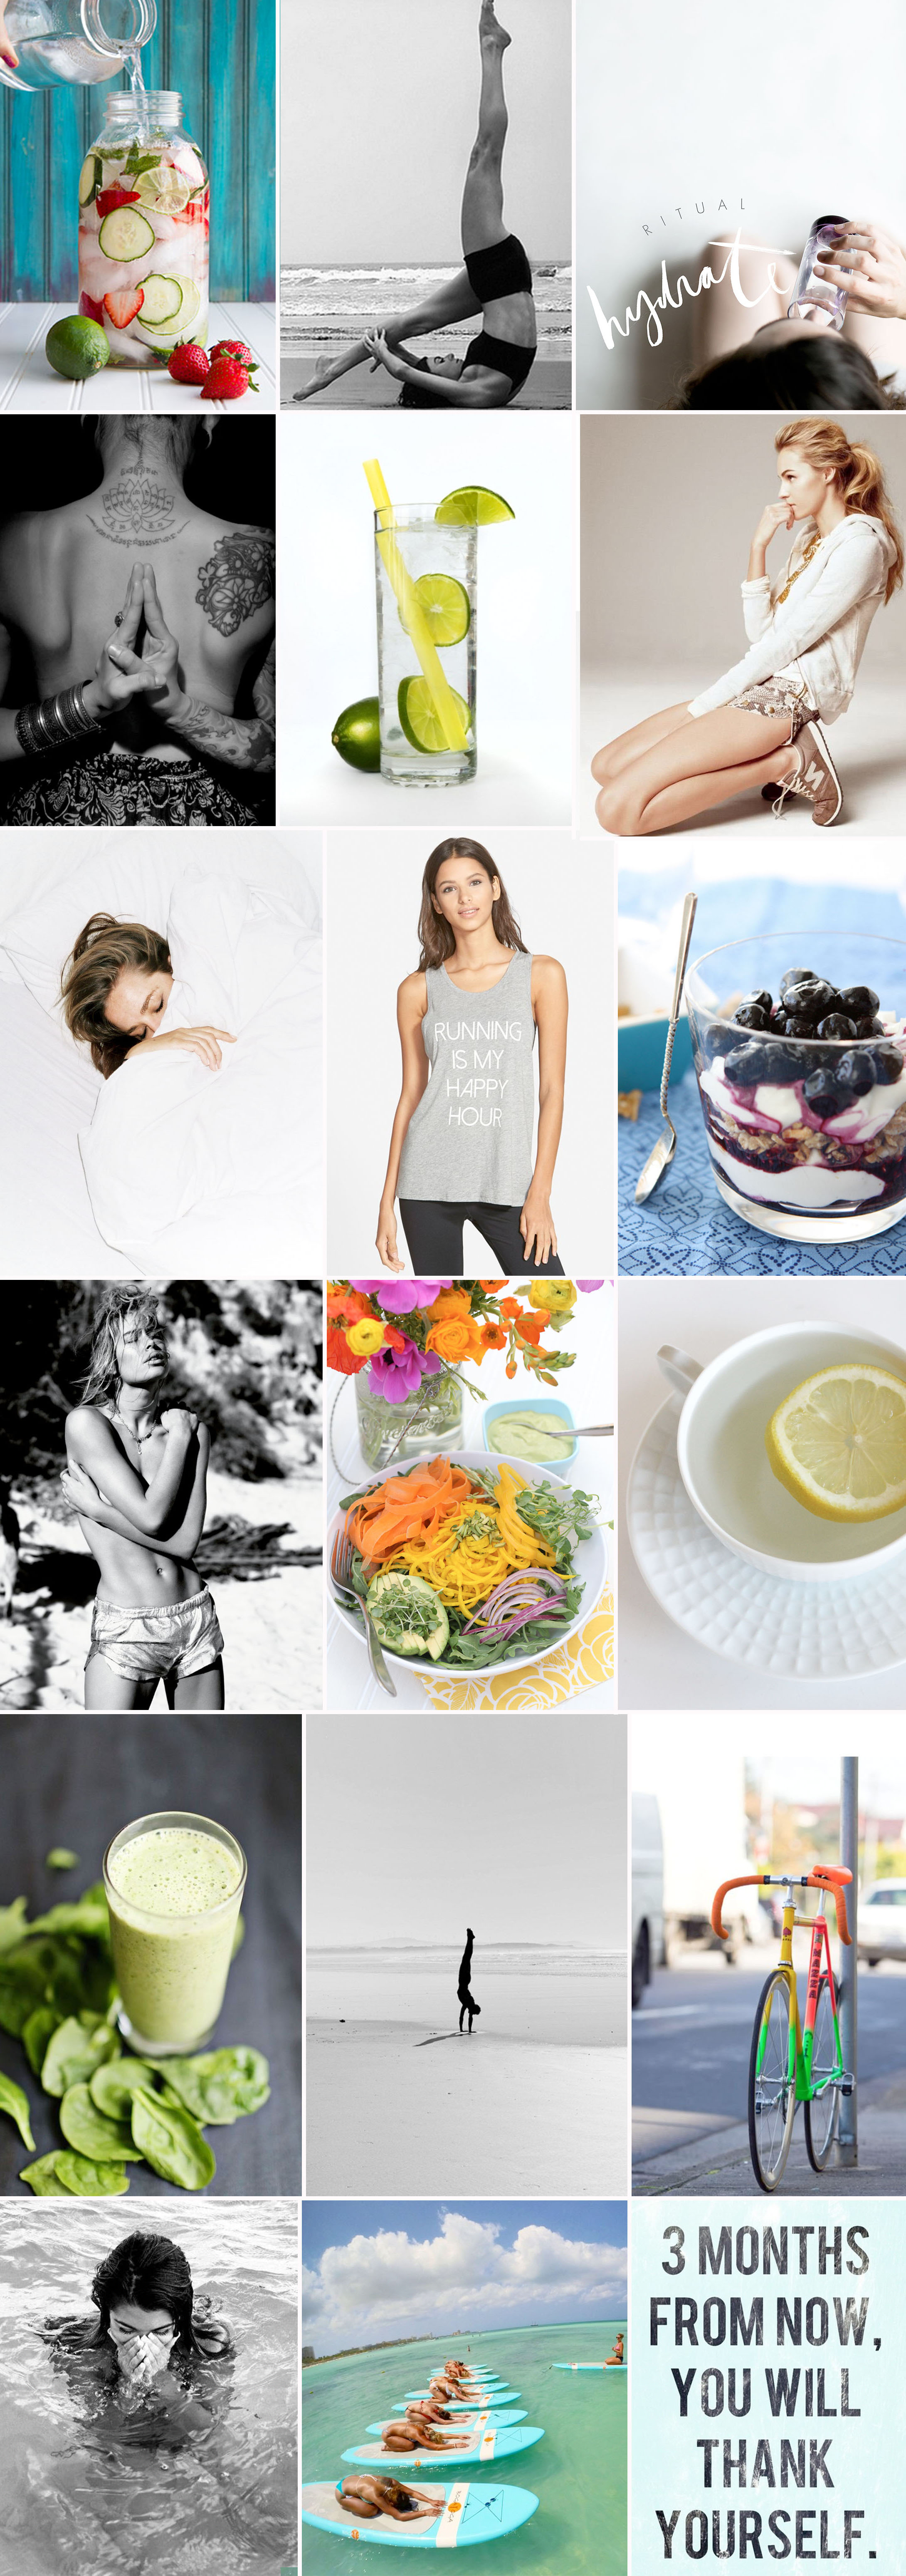 Wellbeing collage